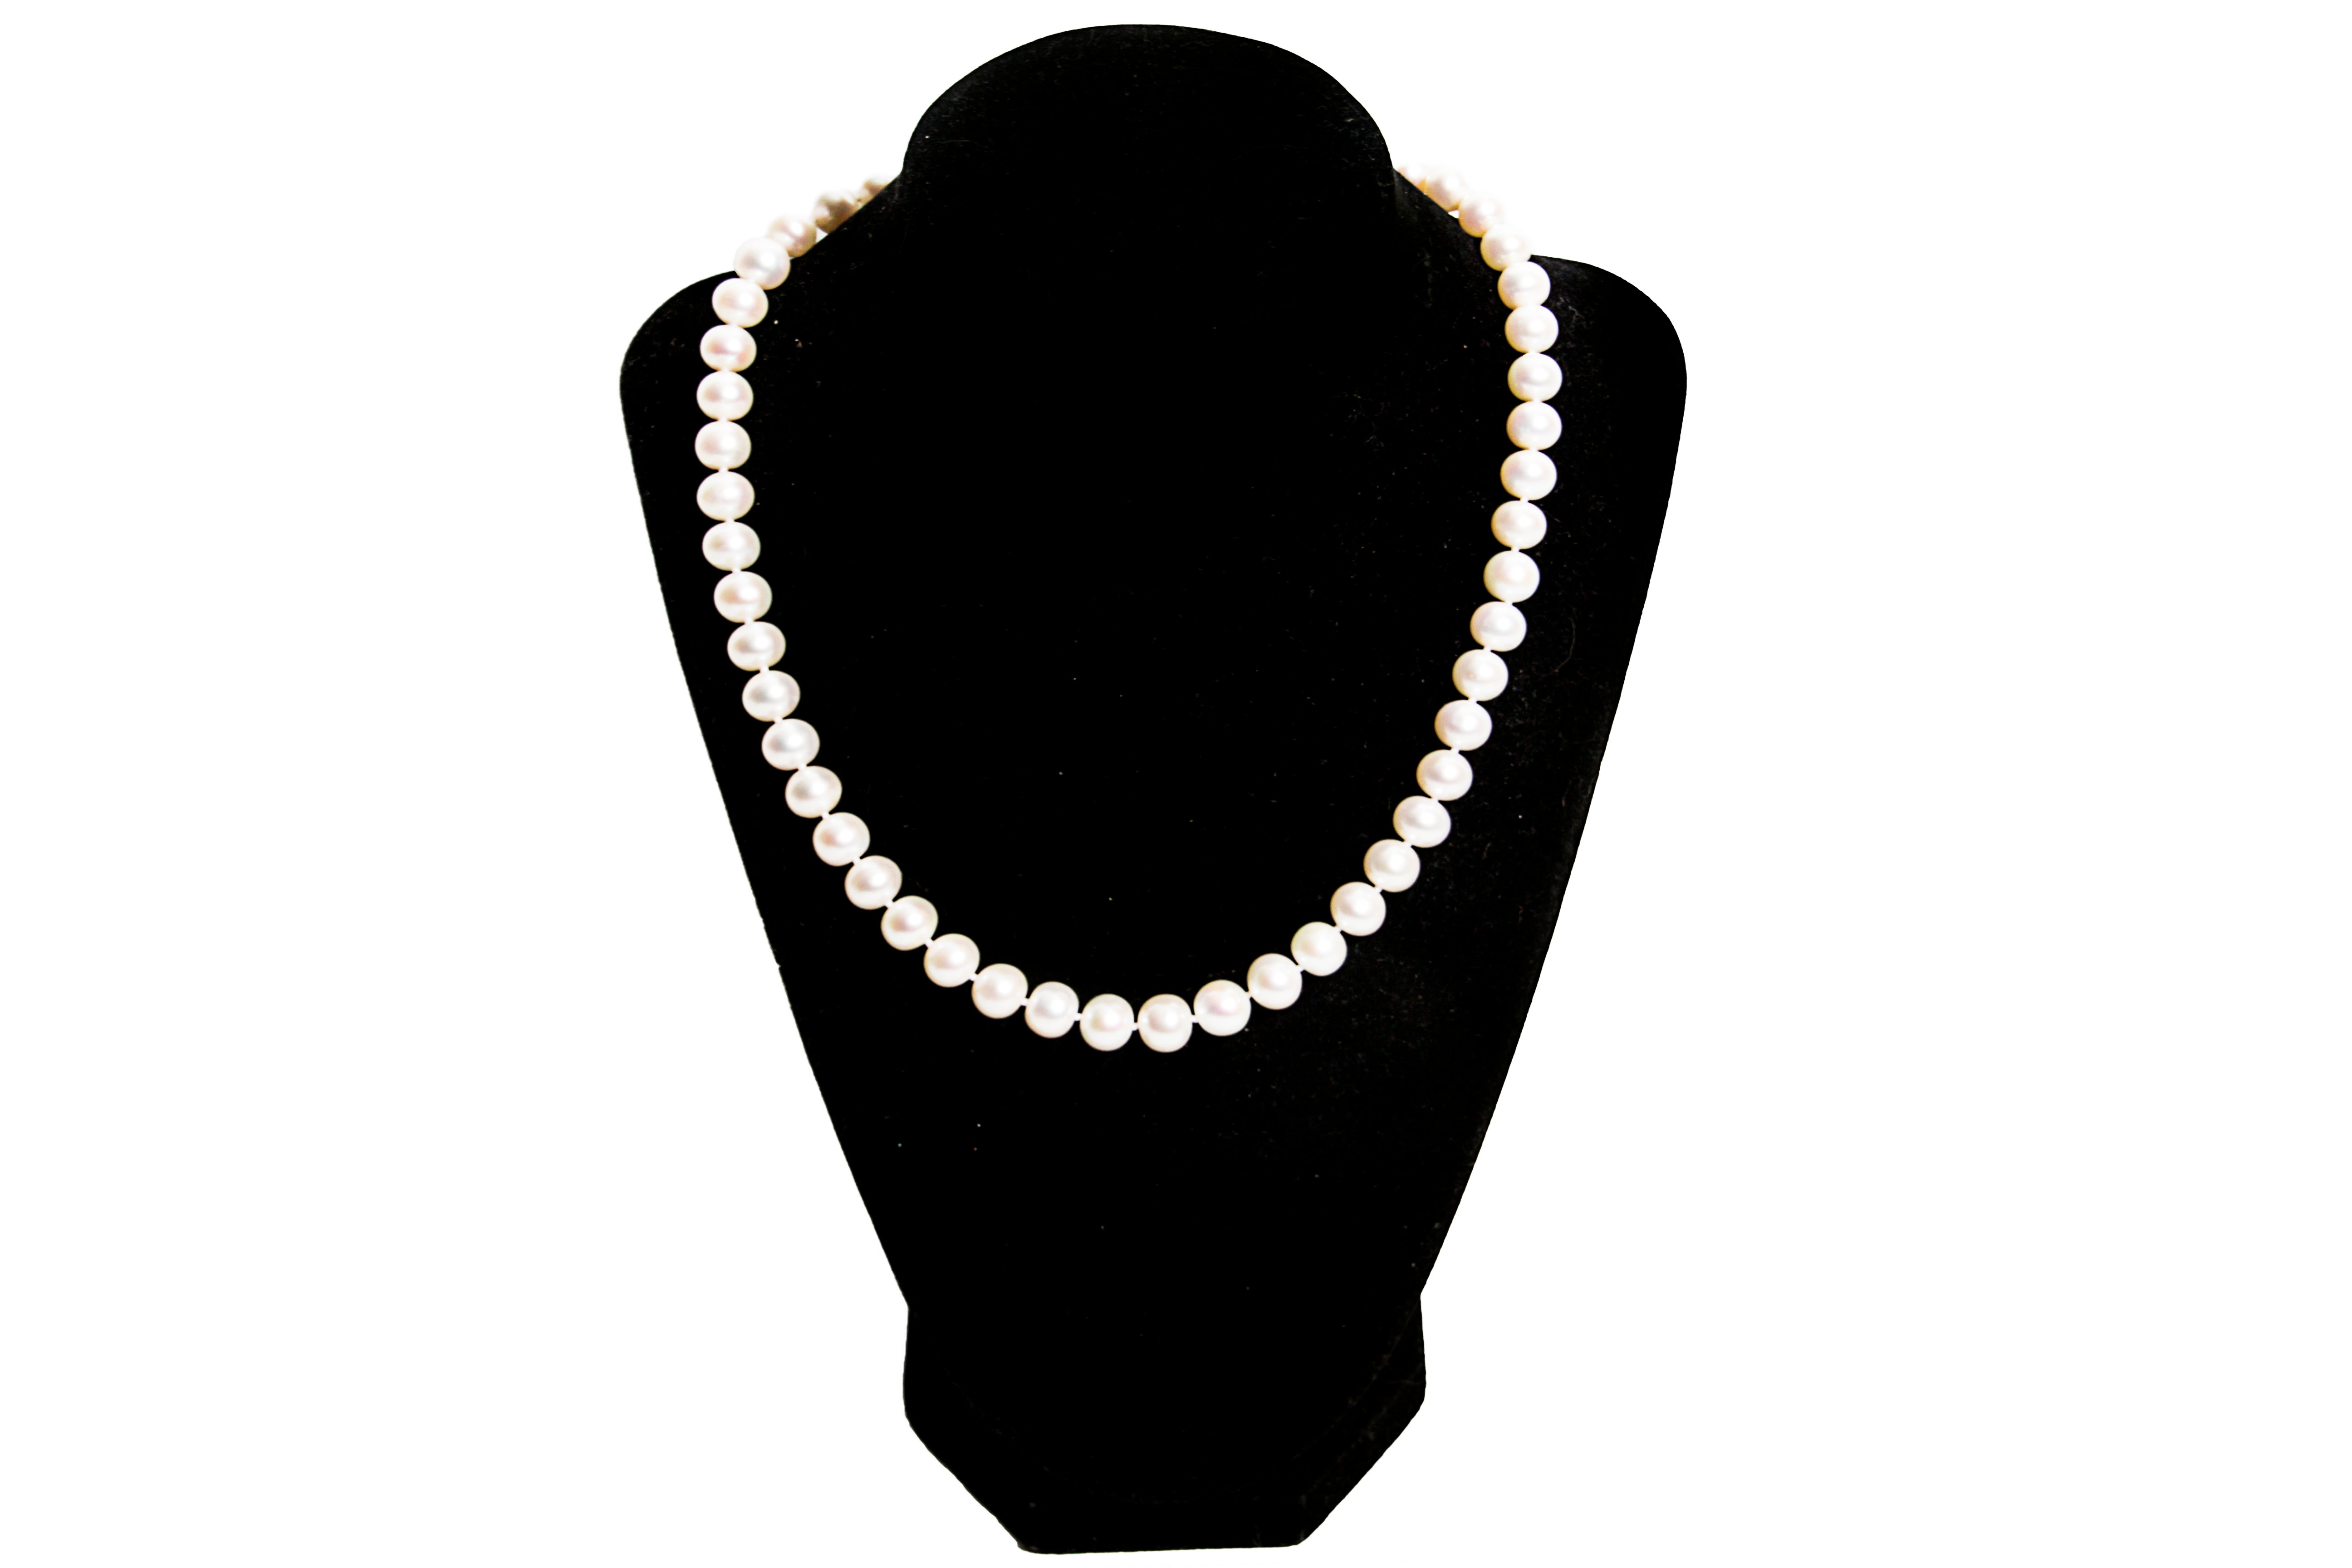 AAA Grade, Super high quality 9-10 mm Beautiful and large sized cultured water pearls necklace- A lifetime piece